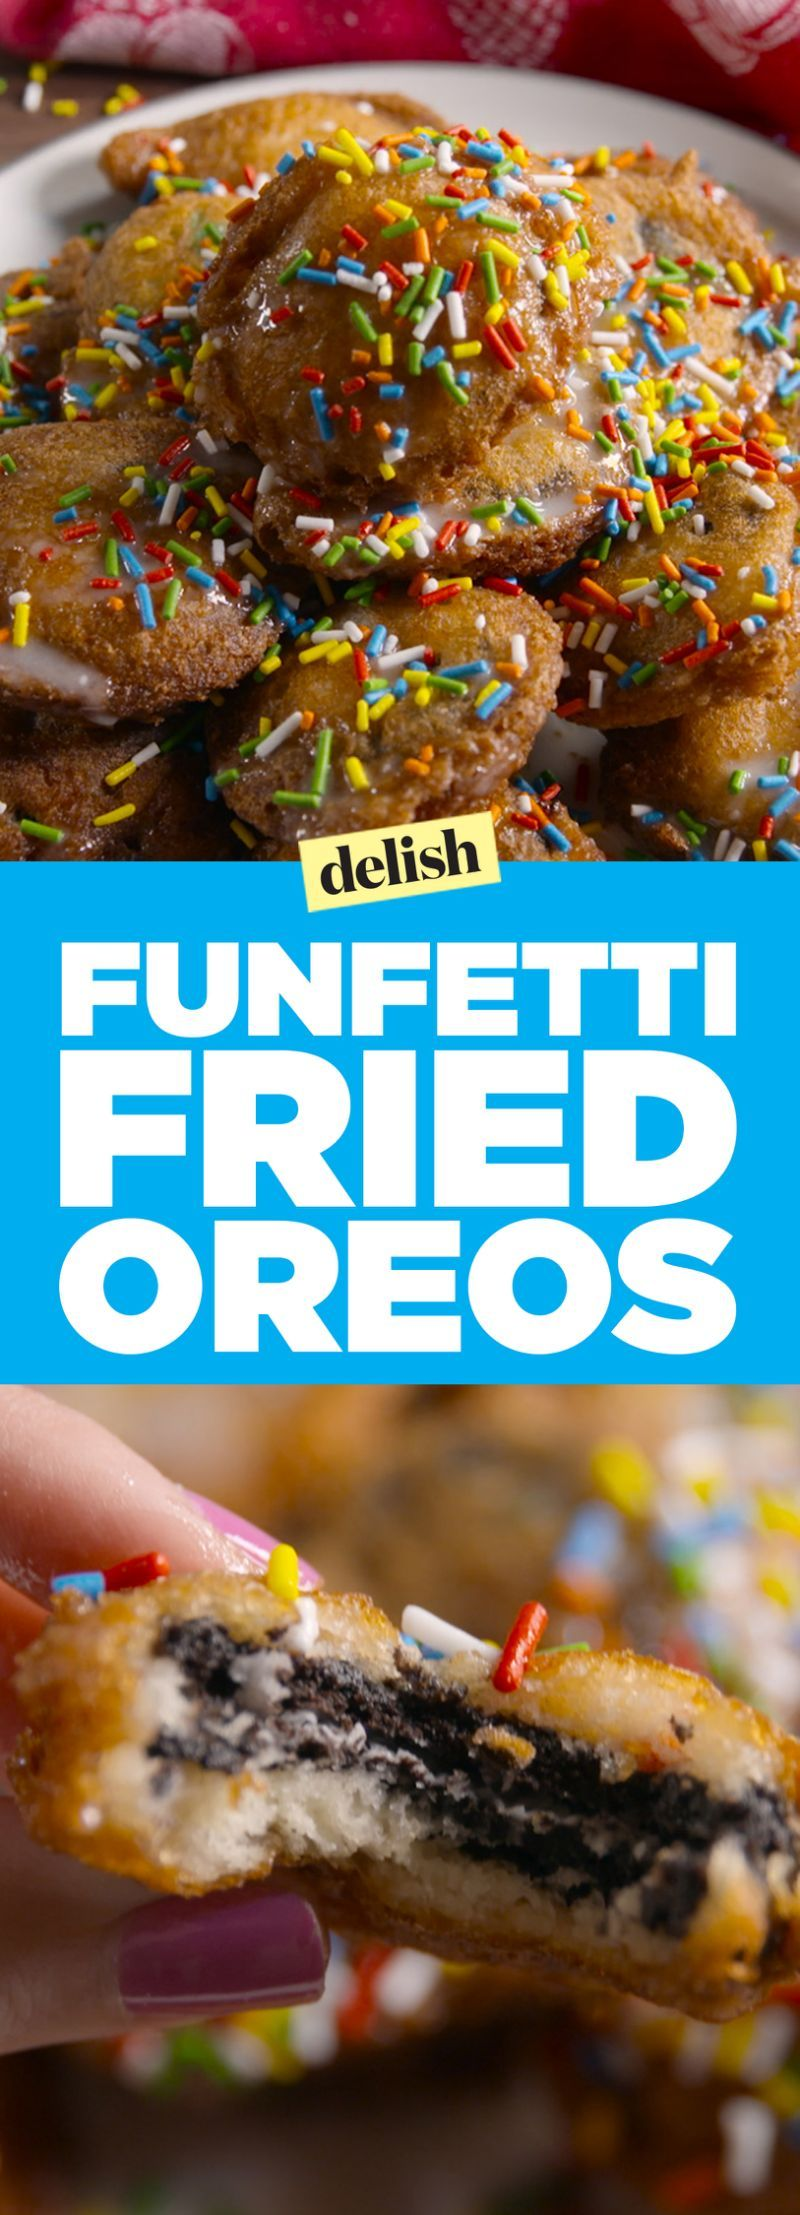 Funfetti Fried Oreos Are Better Than Anything You'll Find At The Fair